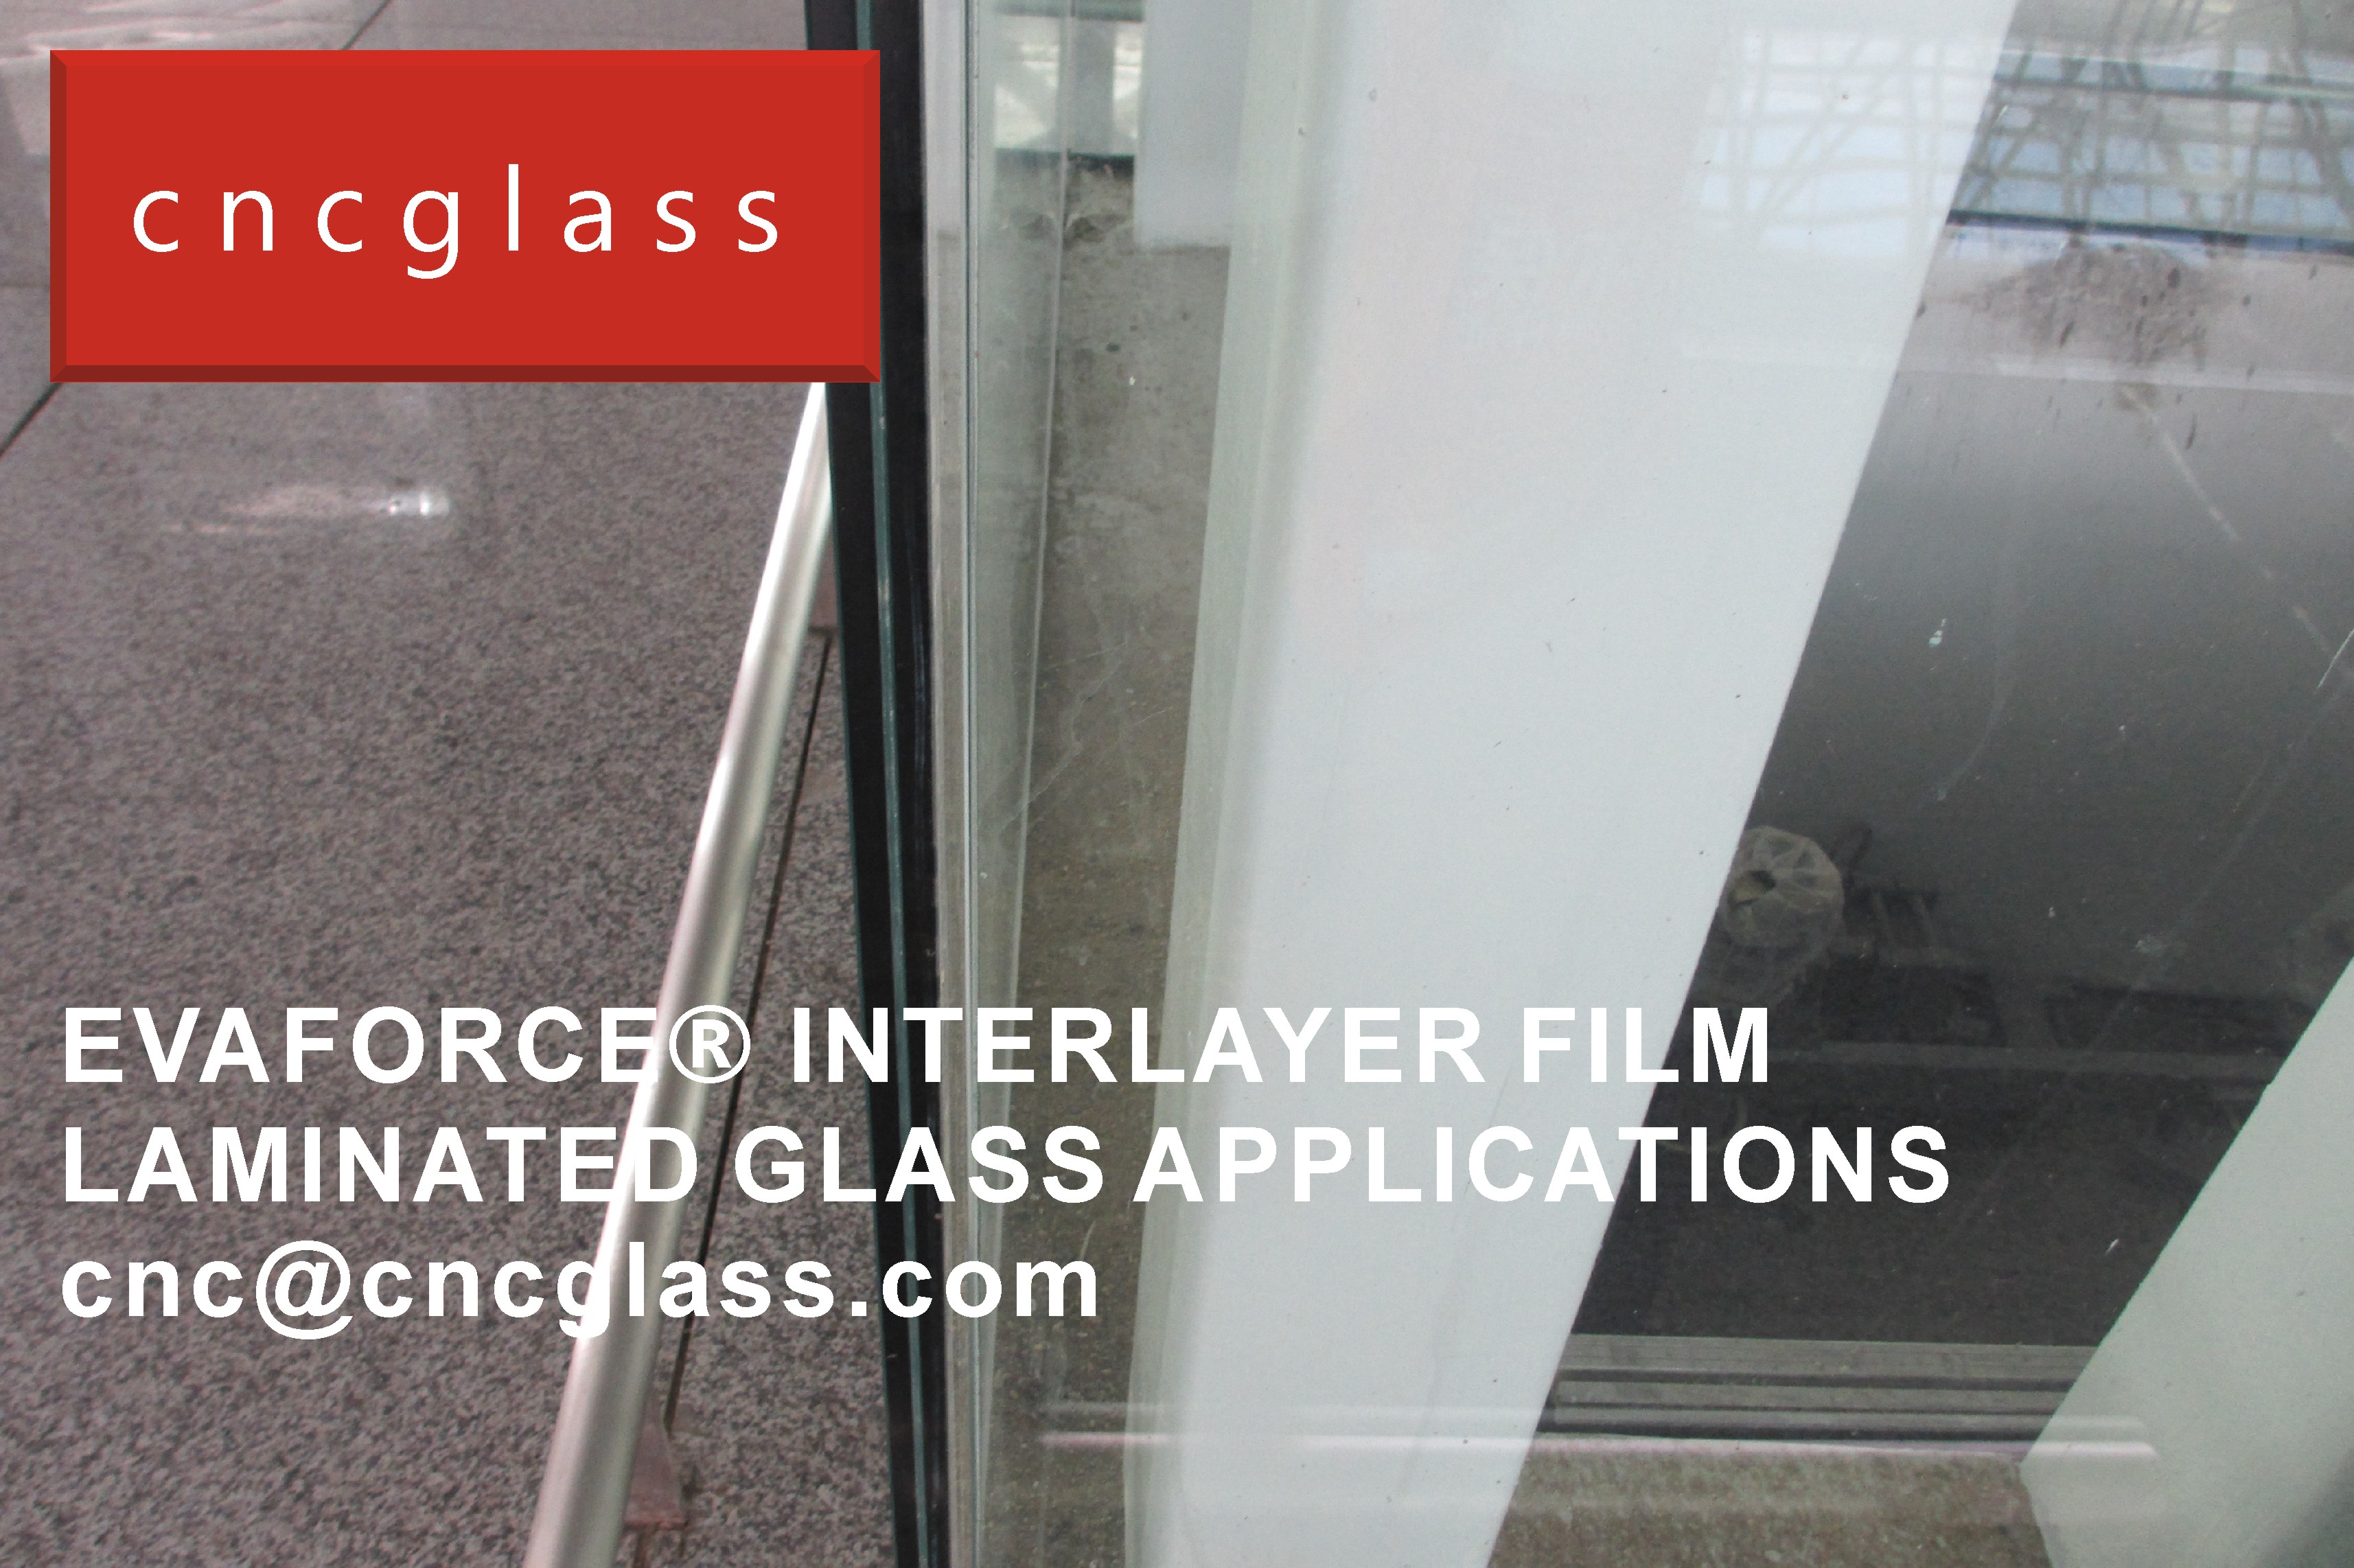 EVAFORCE INTERLAYER FILM LAMINATED GLASS APPLICATIONS (10)